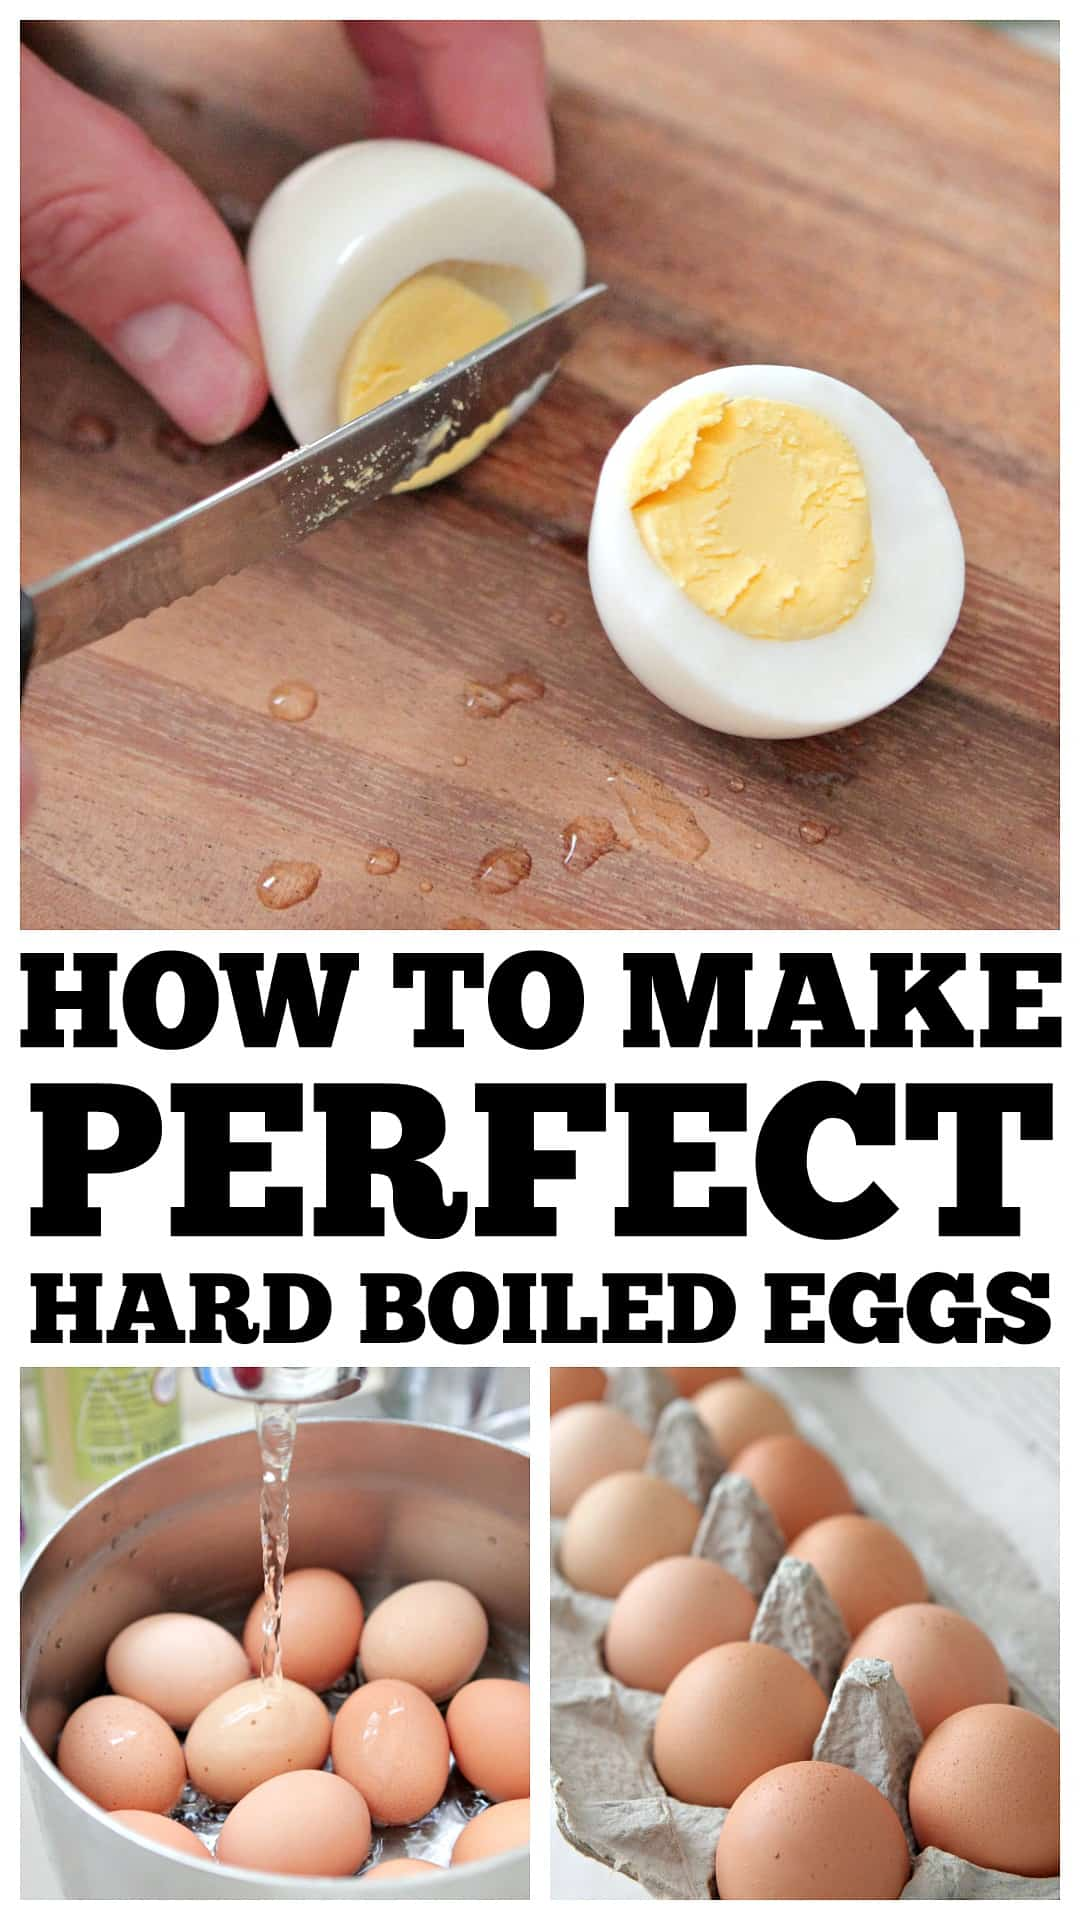 How To Make Perfect Hard Boiled Eggs | Easy Method for Perfect Eggs